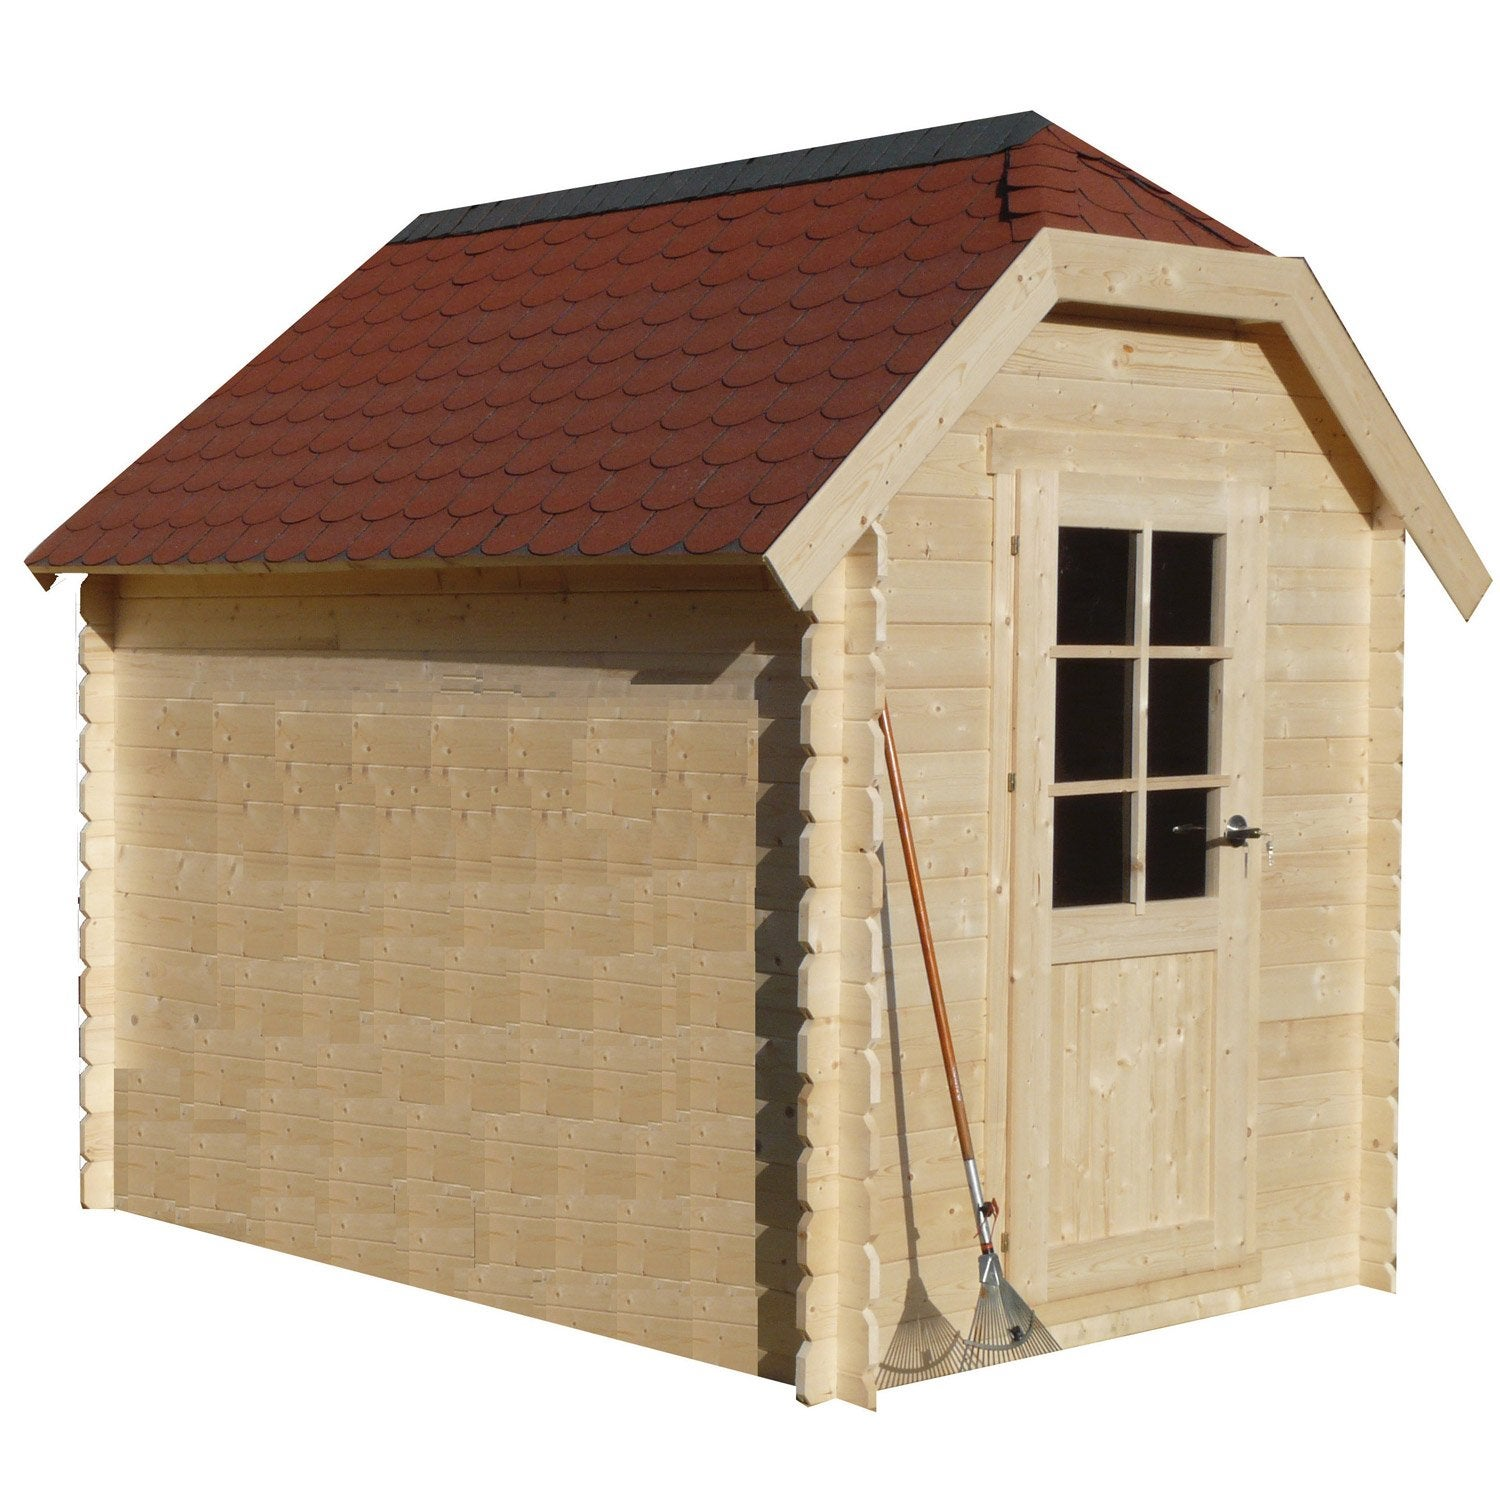 Abri de jardin bois cottage m mm leroy merlin for Cabanon de jardin leroy merlin